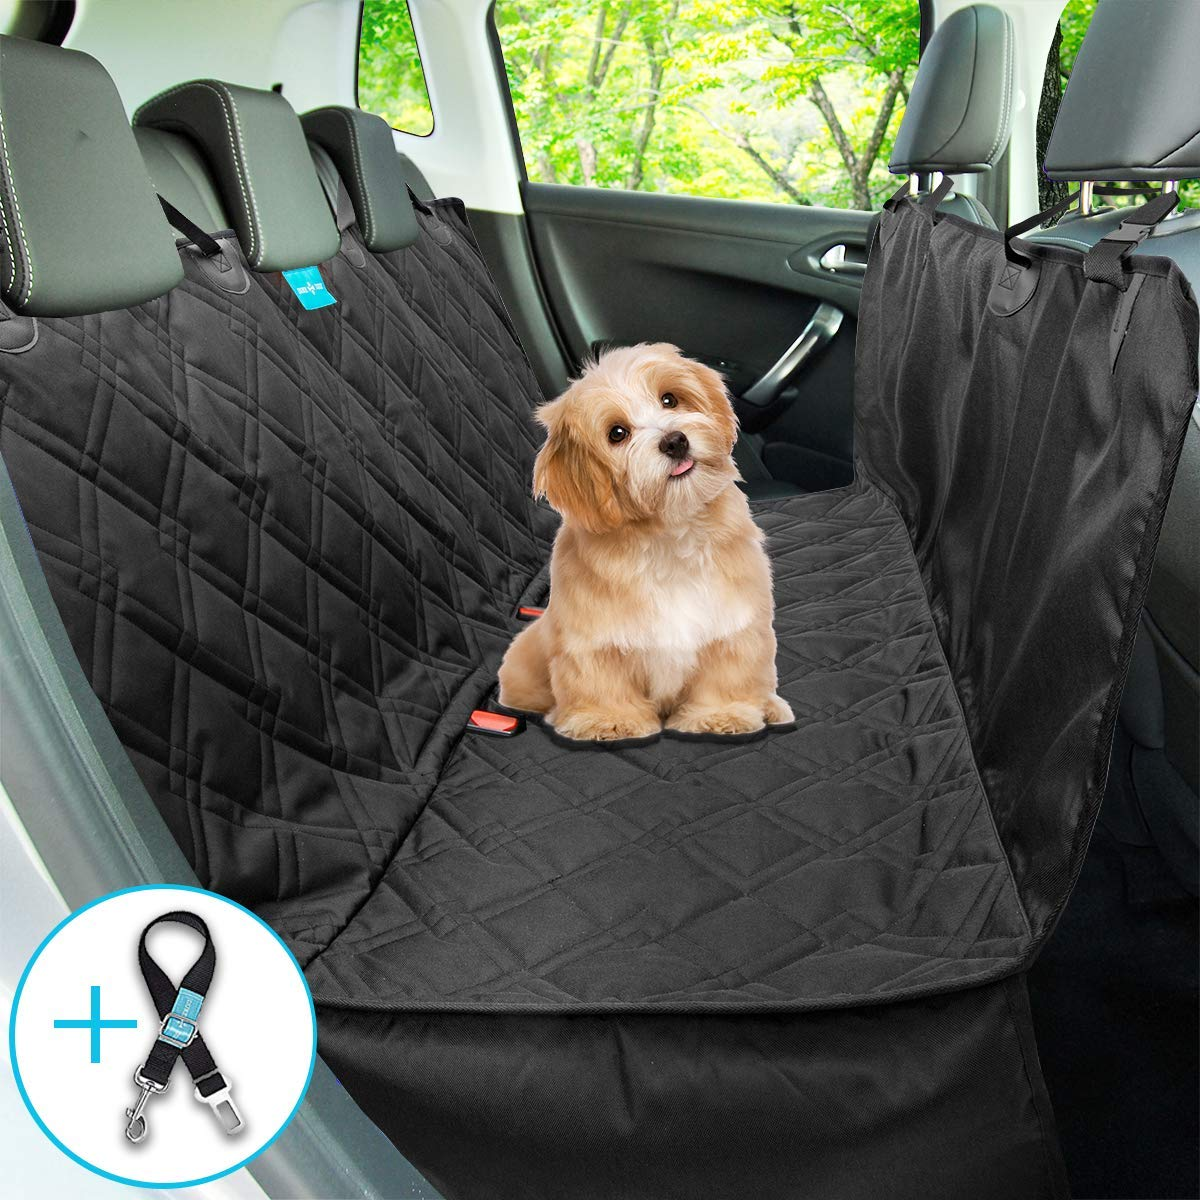 Dog Car Seat Cover Dog Hammock for Back Seat Best Pet car seat Cover for Cars Trucks SUV Washable Luxury Heavy Duty Durable Side Flaps Universal Size Pet Seat Belt Leash Included by Duke&Dixie